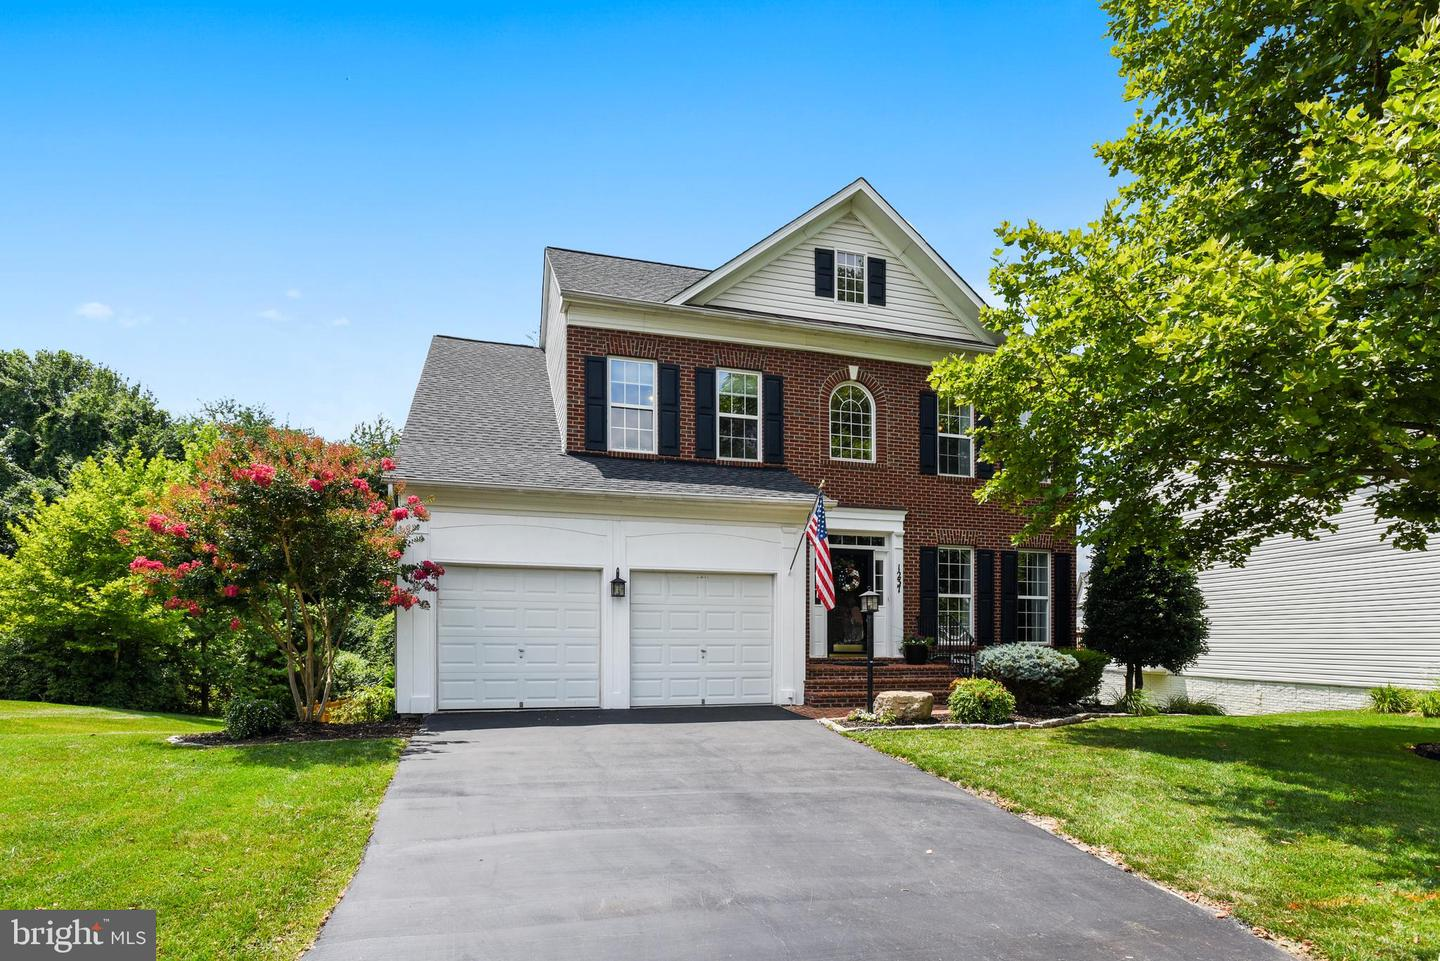 Single Family for Sale at 1237 Tennessee Dr NE 1237 Tennessee Dr NE Leesburg, Virginia 20176 United States